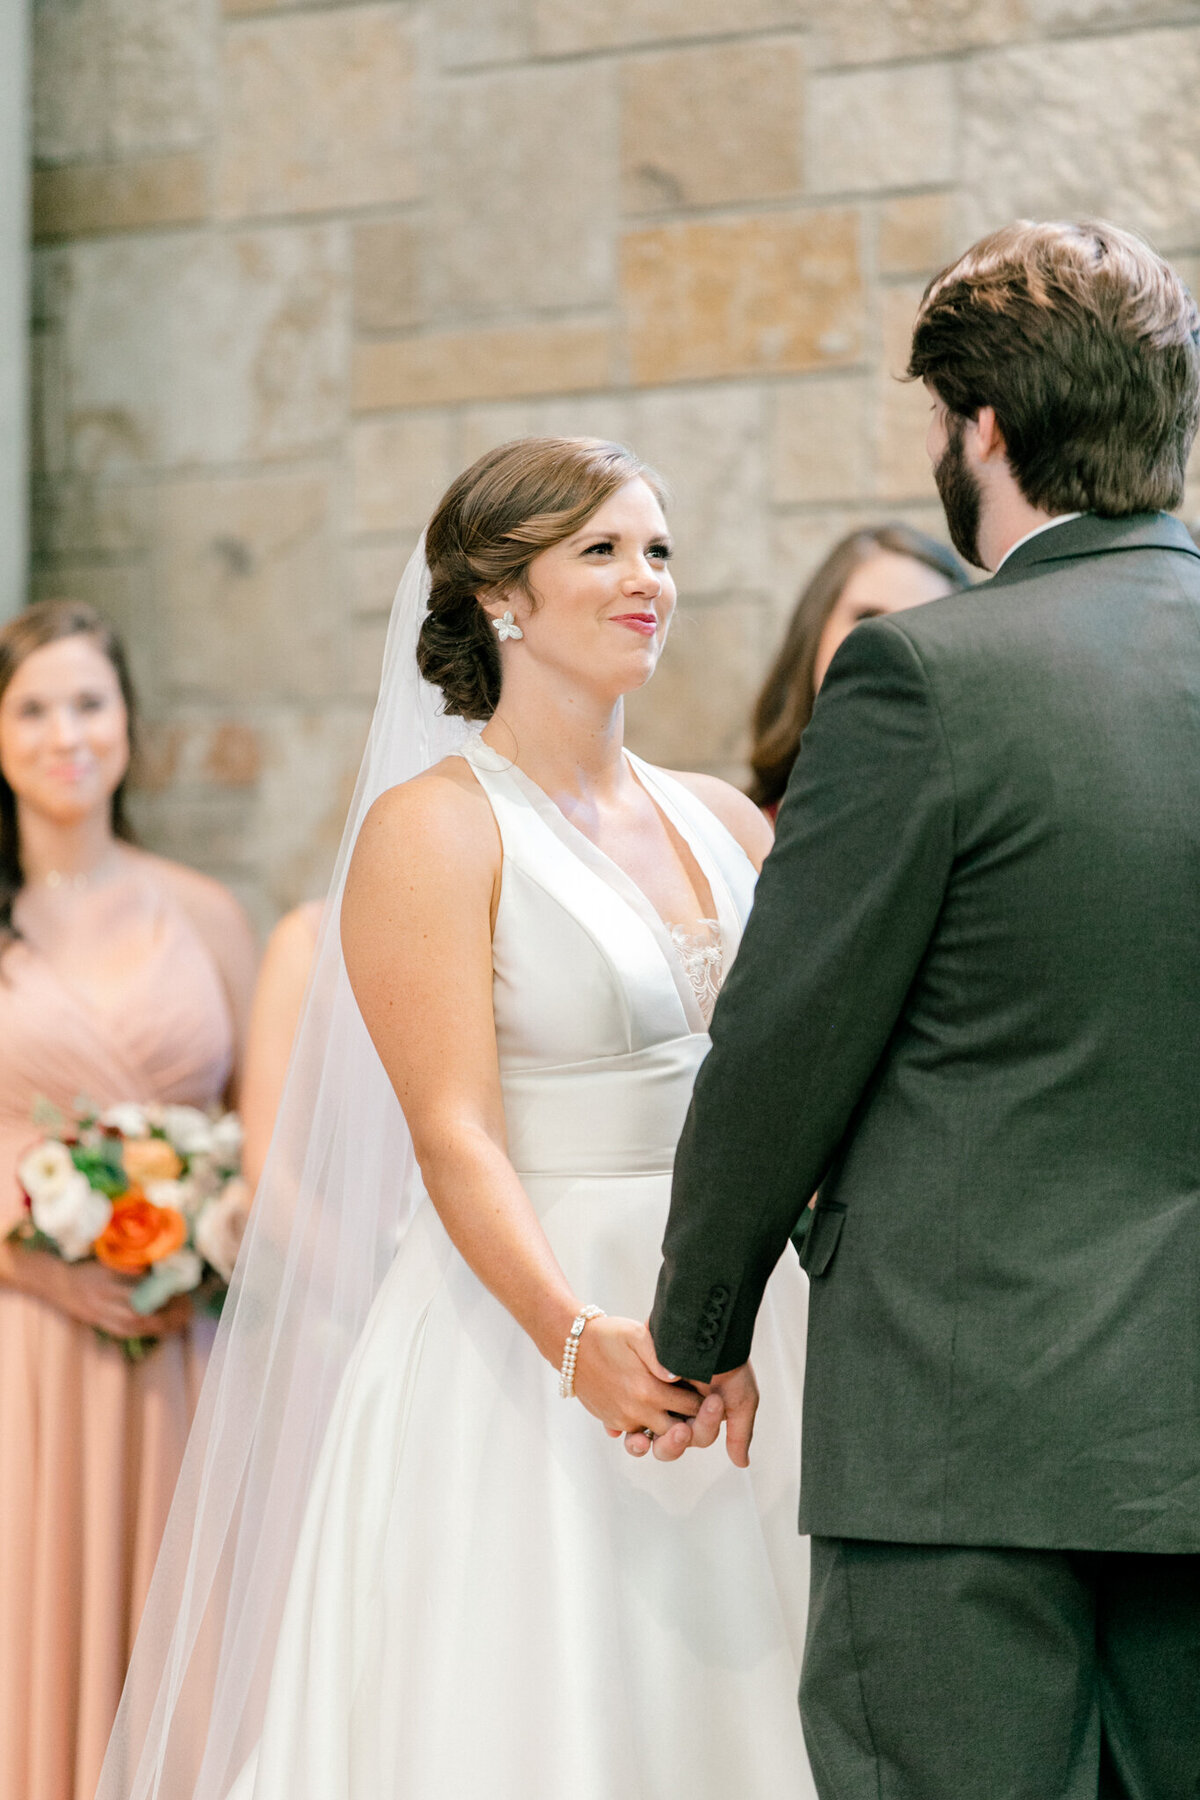 Kaylee & Michael's Wedding at Watermark Community Church | Dallas Wedding Photographer | Sami Kathryn Photography-114